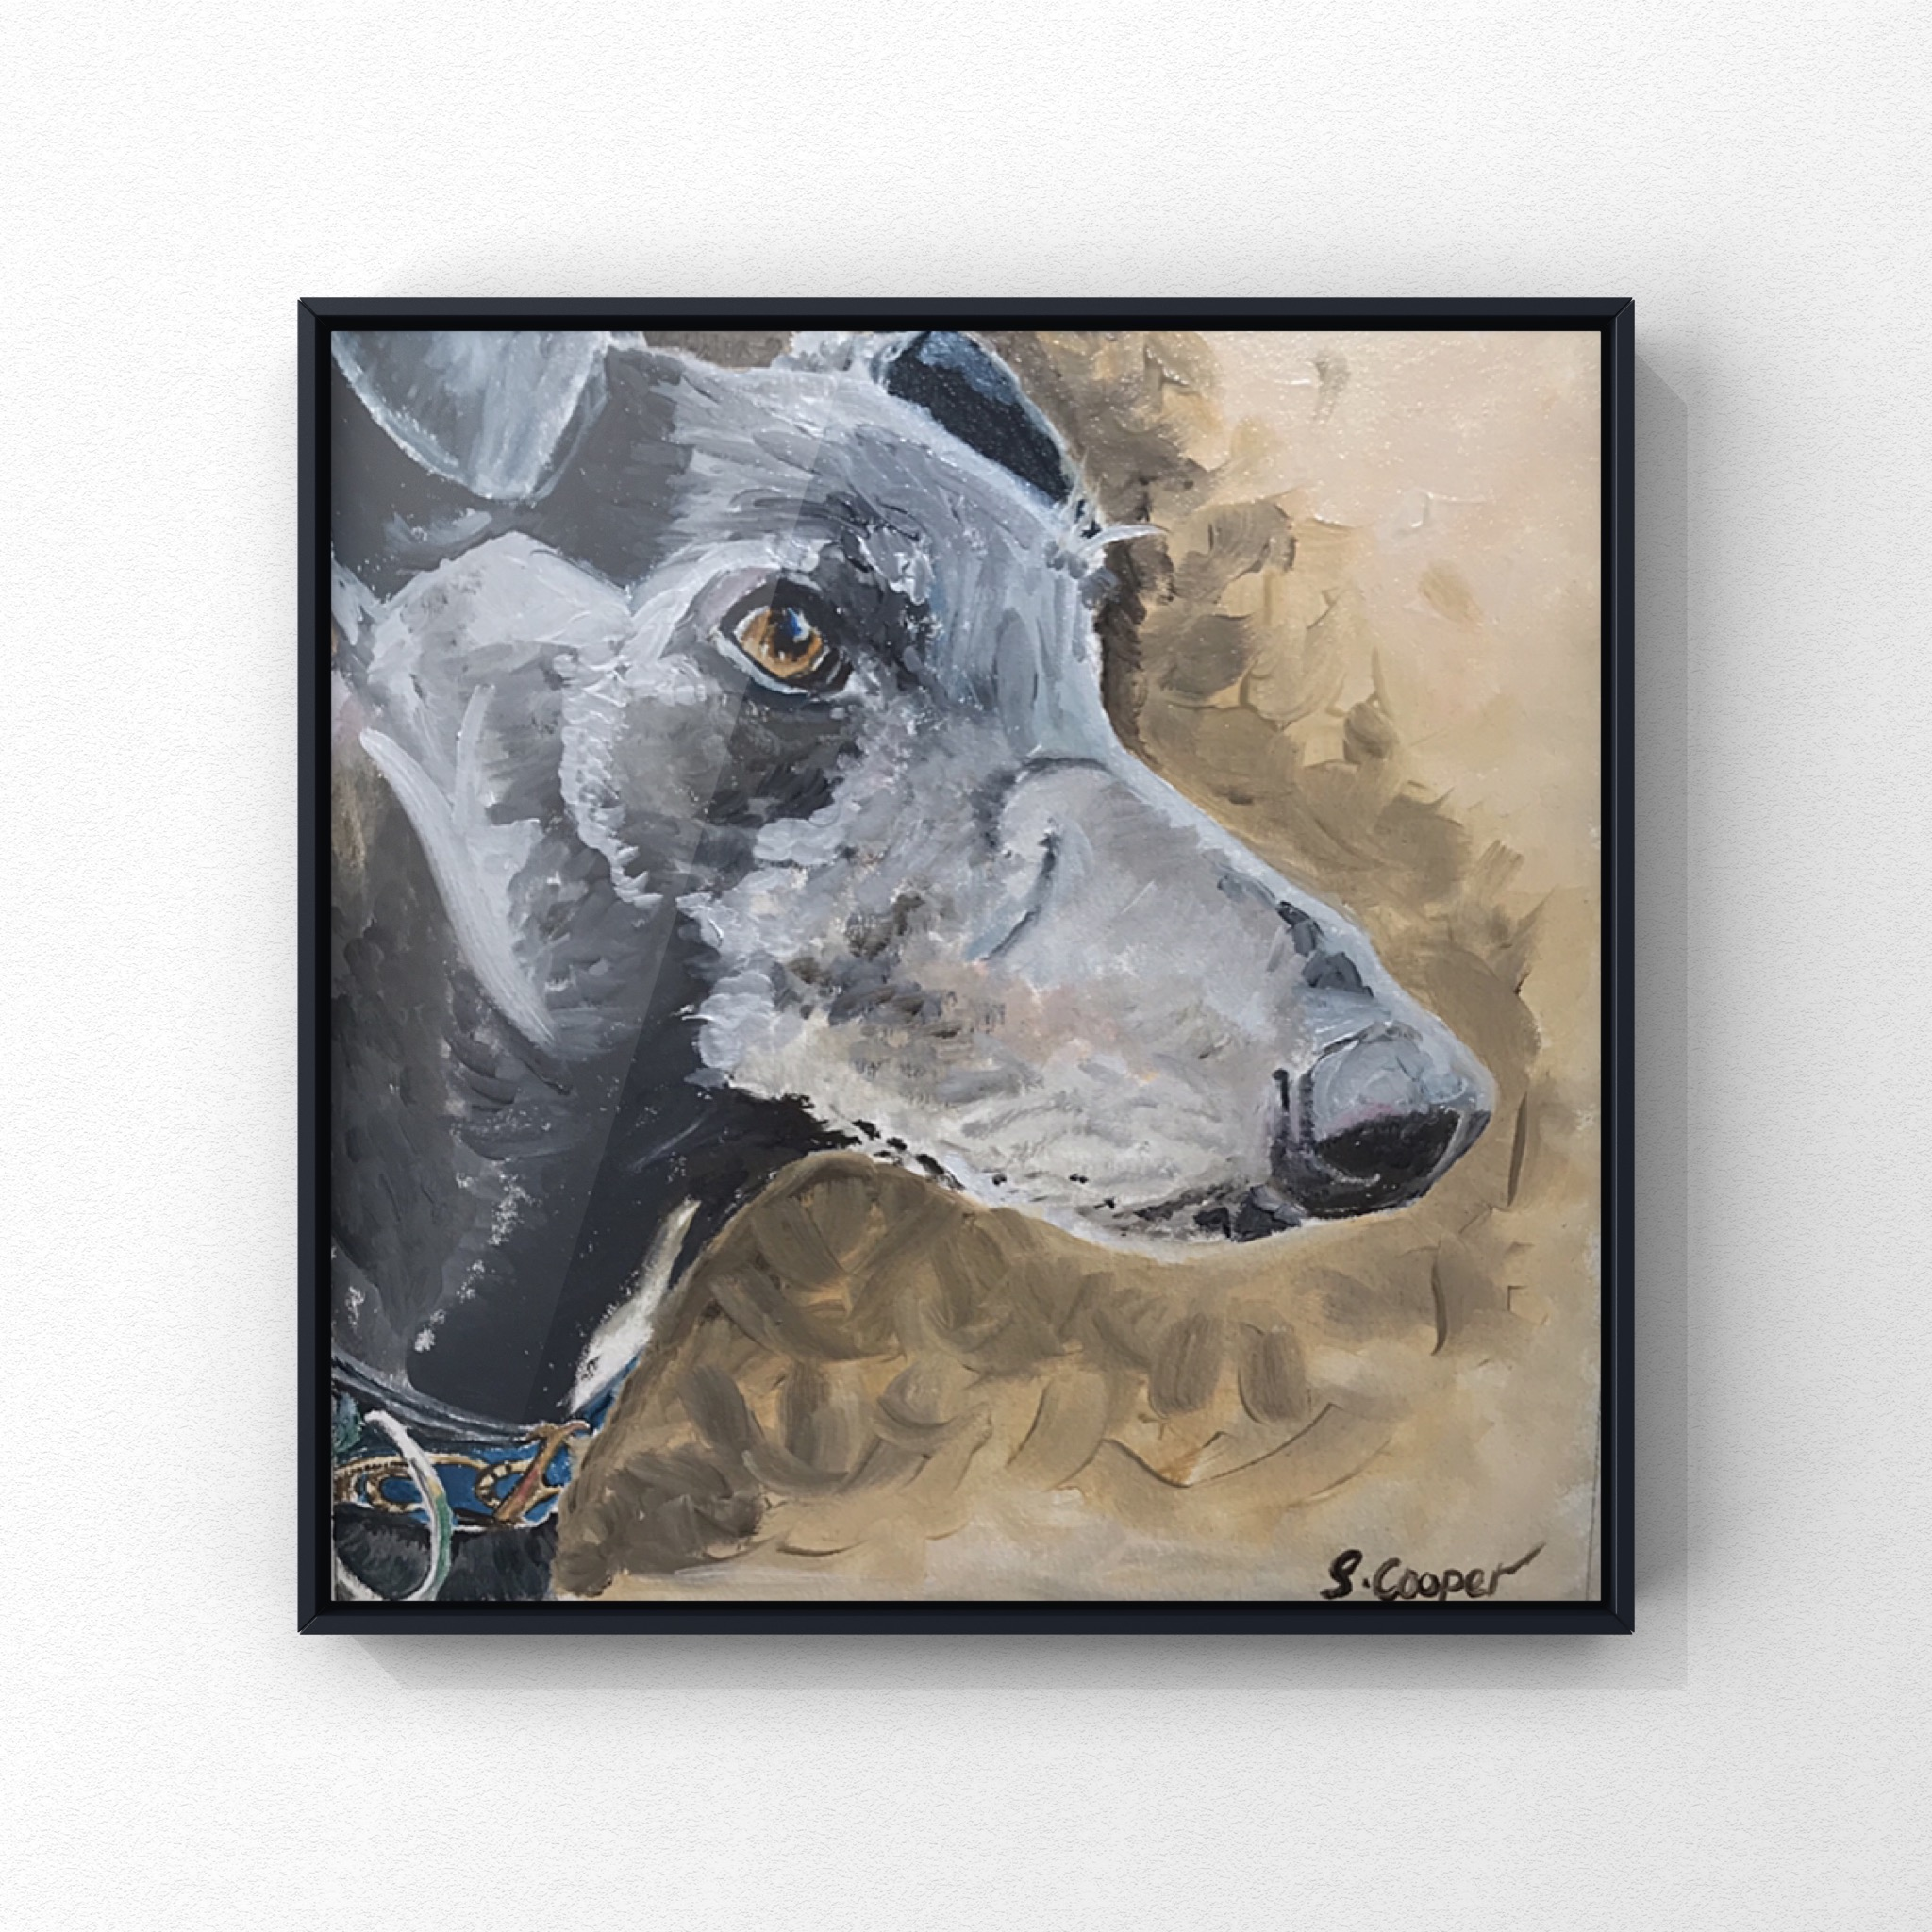 Dukie the Greyhound